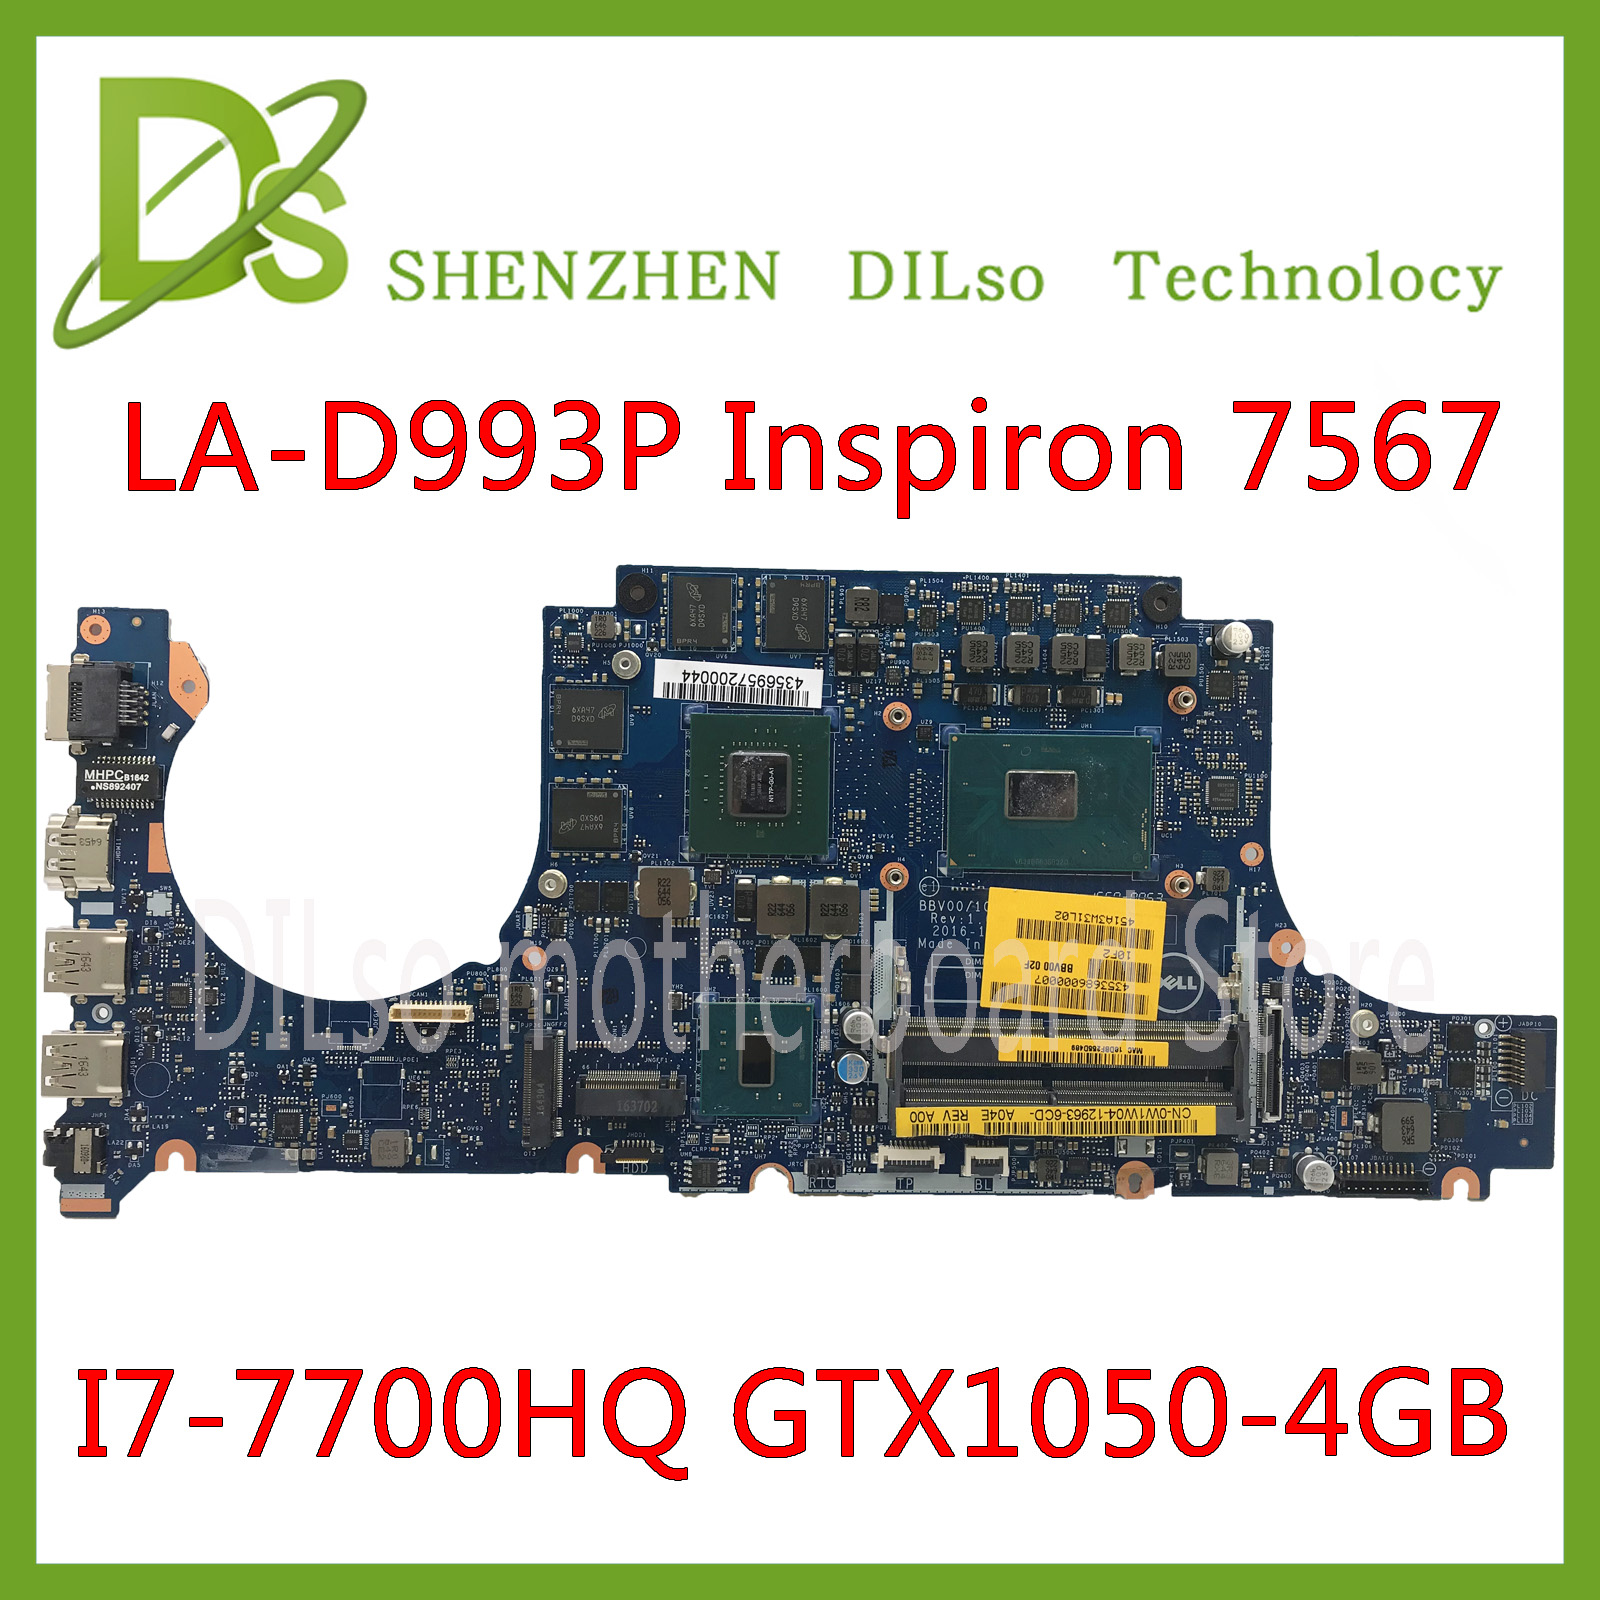 KEFU LA-D993P Motherboard For DELL Inspiron 15 7567 Motherboard I7-7700HQ GTX1050 4GB BBV00/10 LA-D993P  CN-0JG23N Test 100%